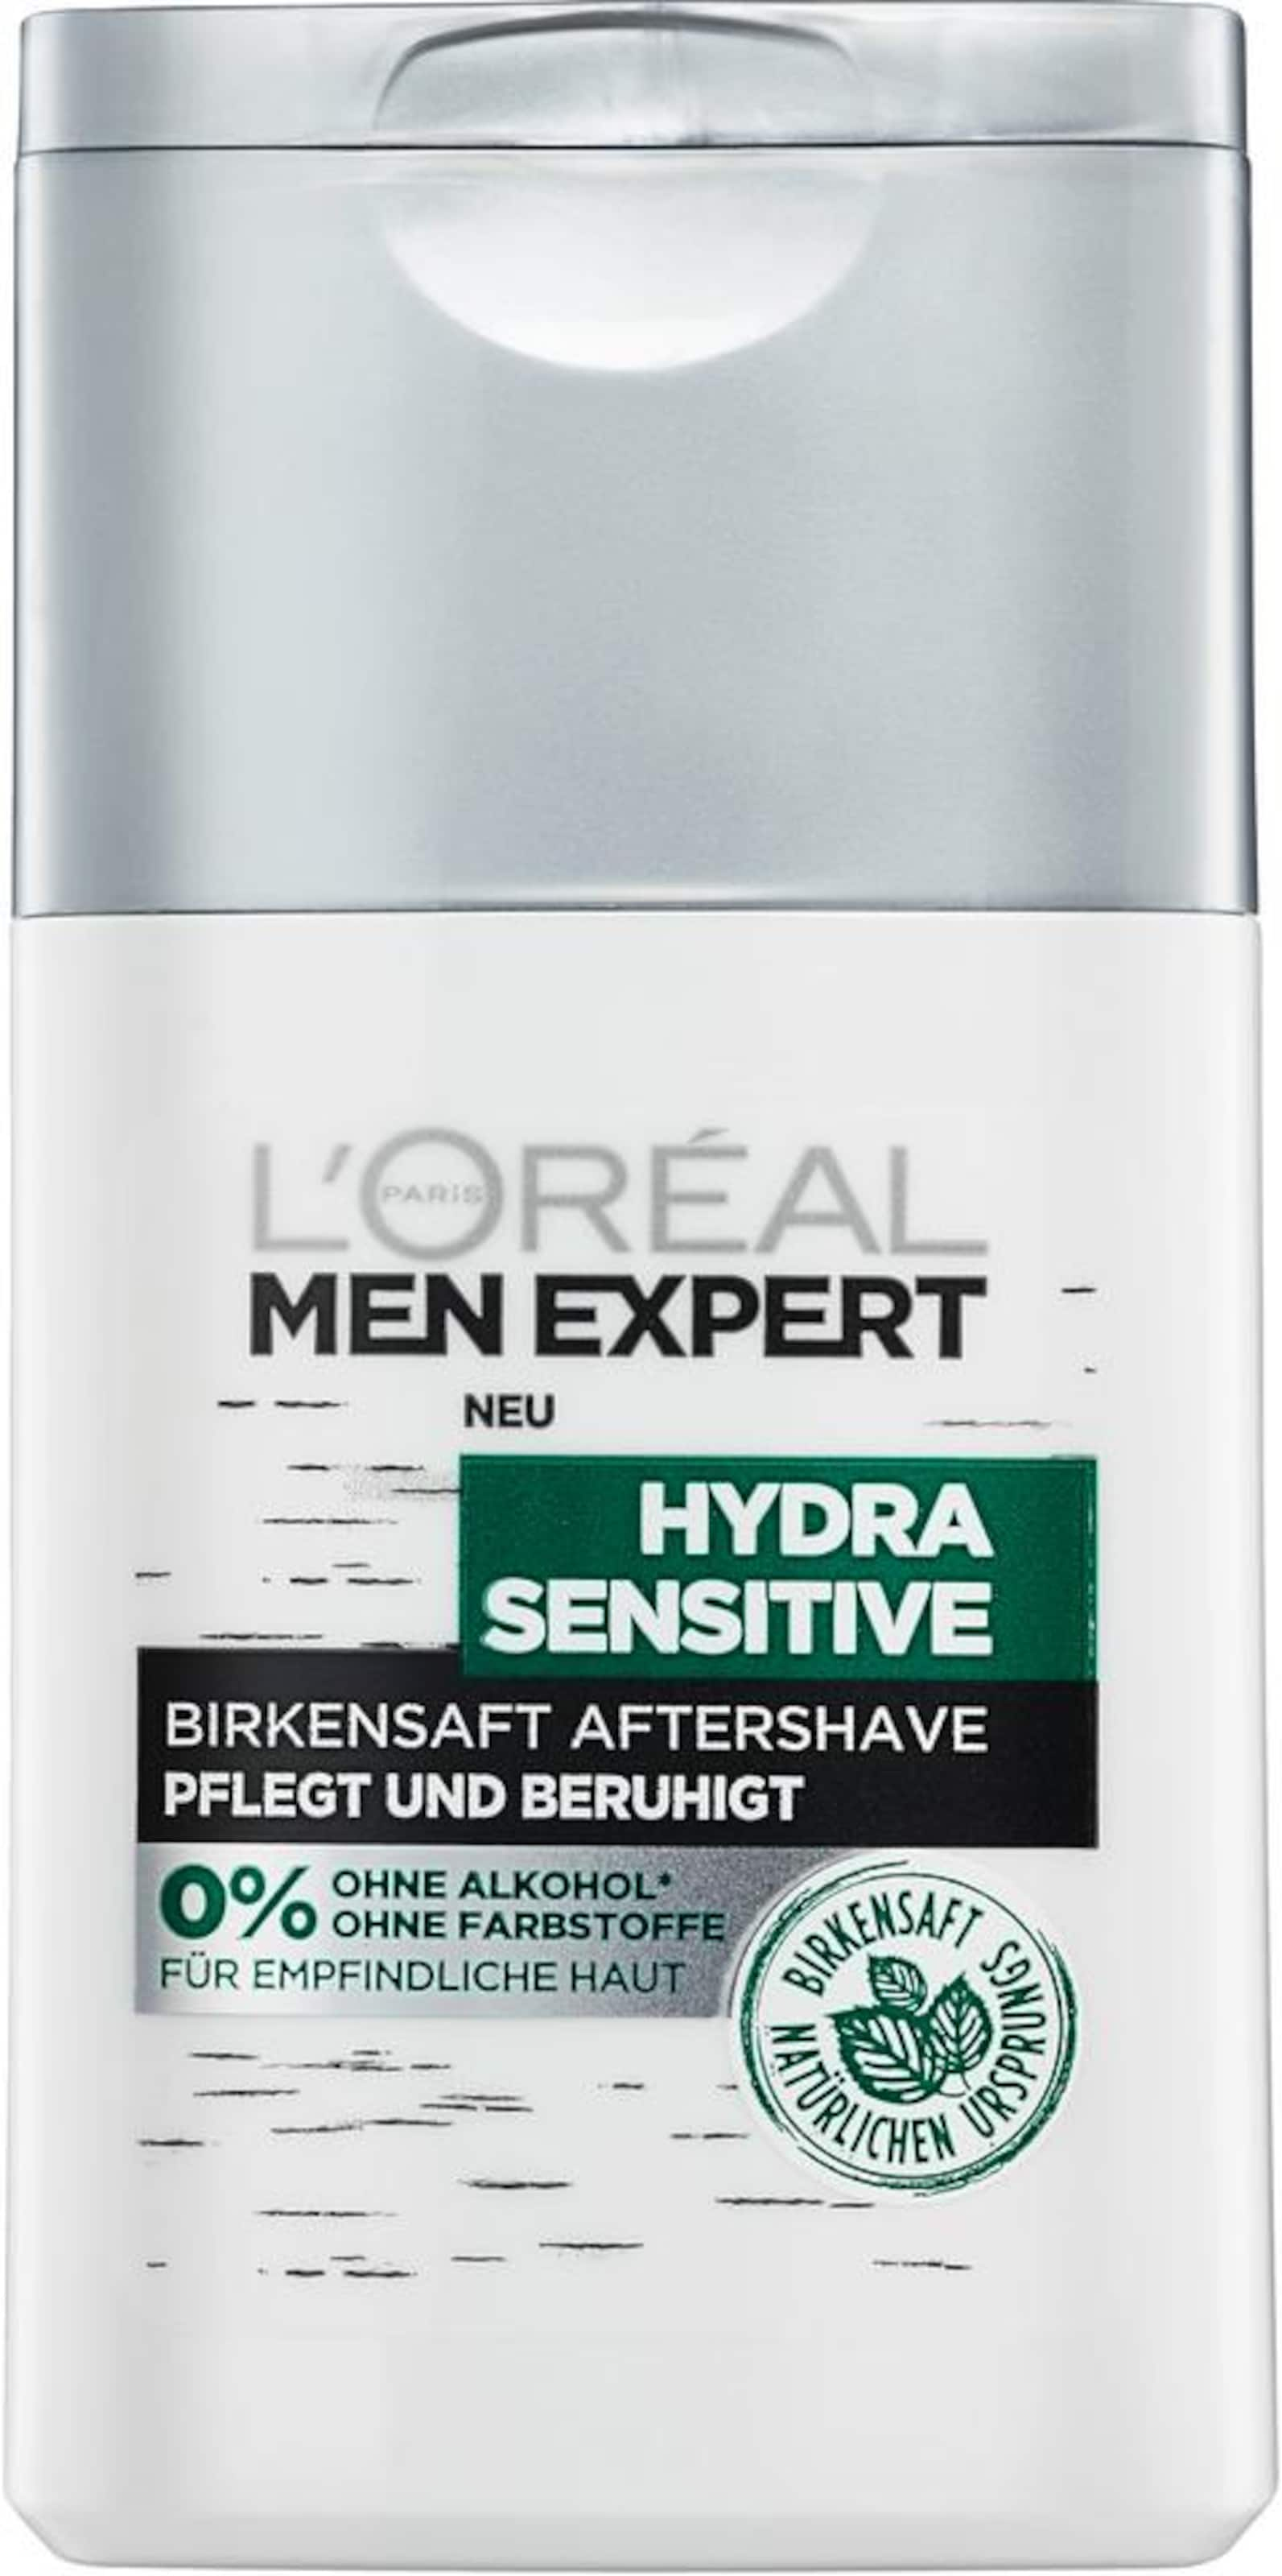 After Expert Men L'oréal Birkensaft' Fluid In Shave Sensitive Paris Weiß 'hydra vn08mNw